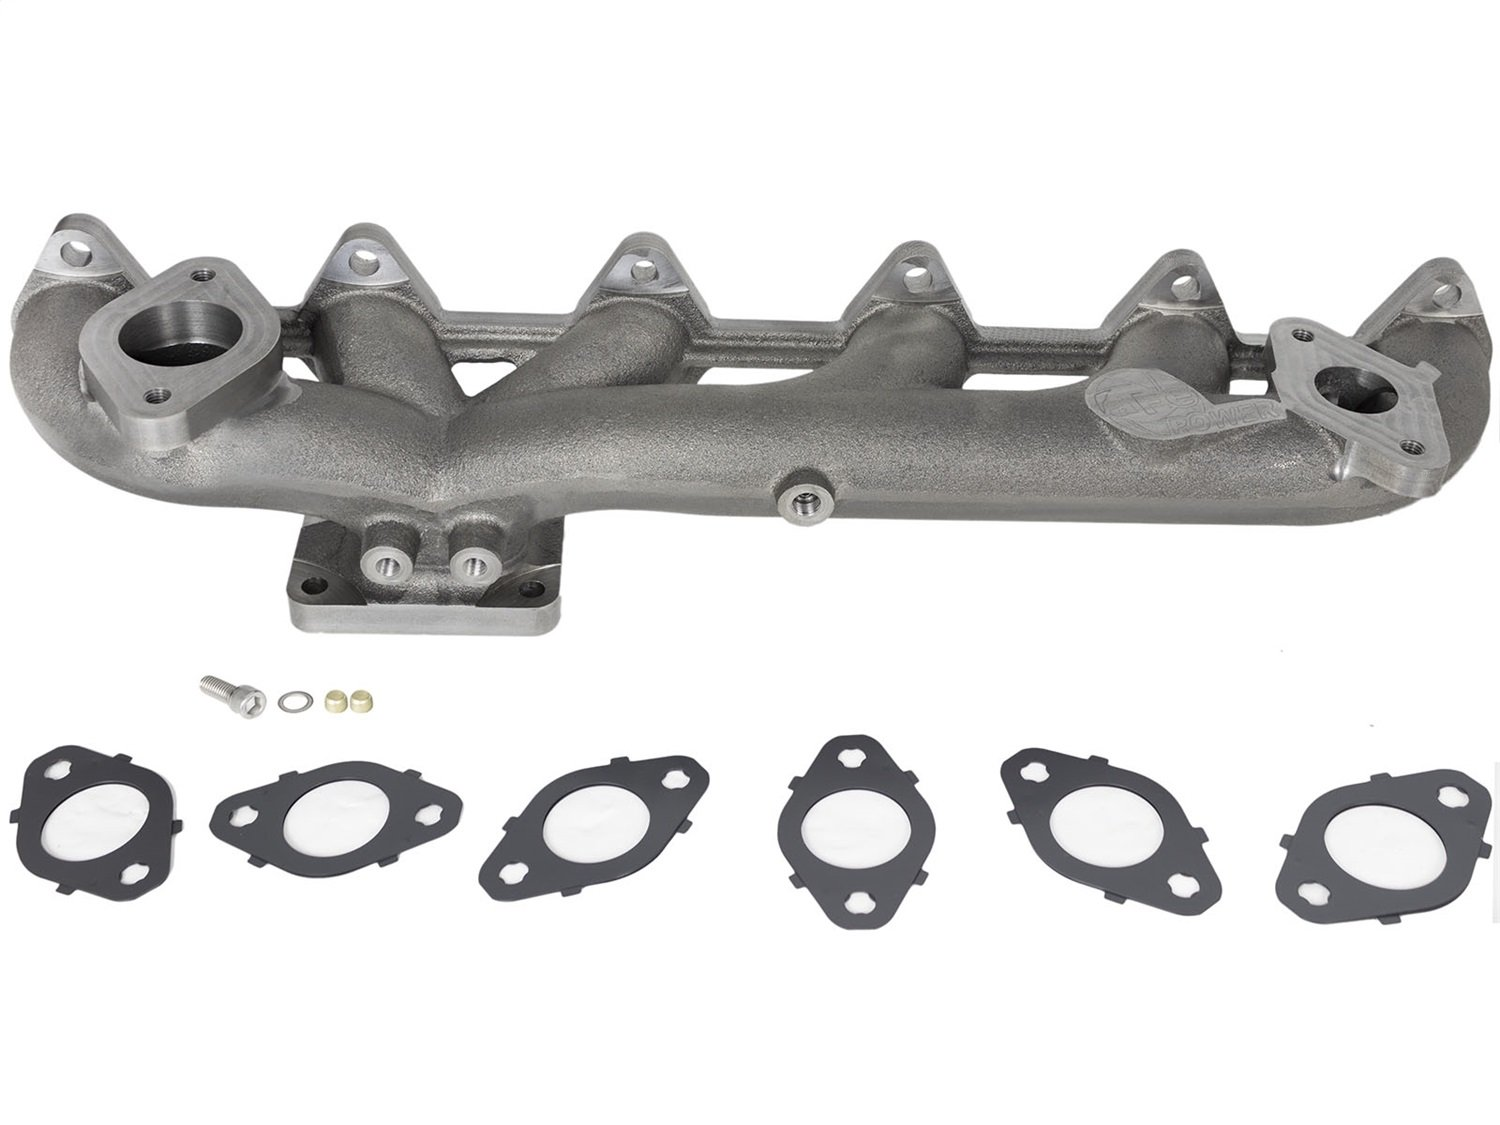 aFe Power 46-40054 BladeRunner Ported Ductile Iron Exhaust Manifold with EGR (Non-CARB Compliant)